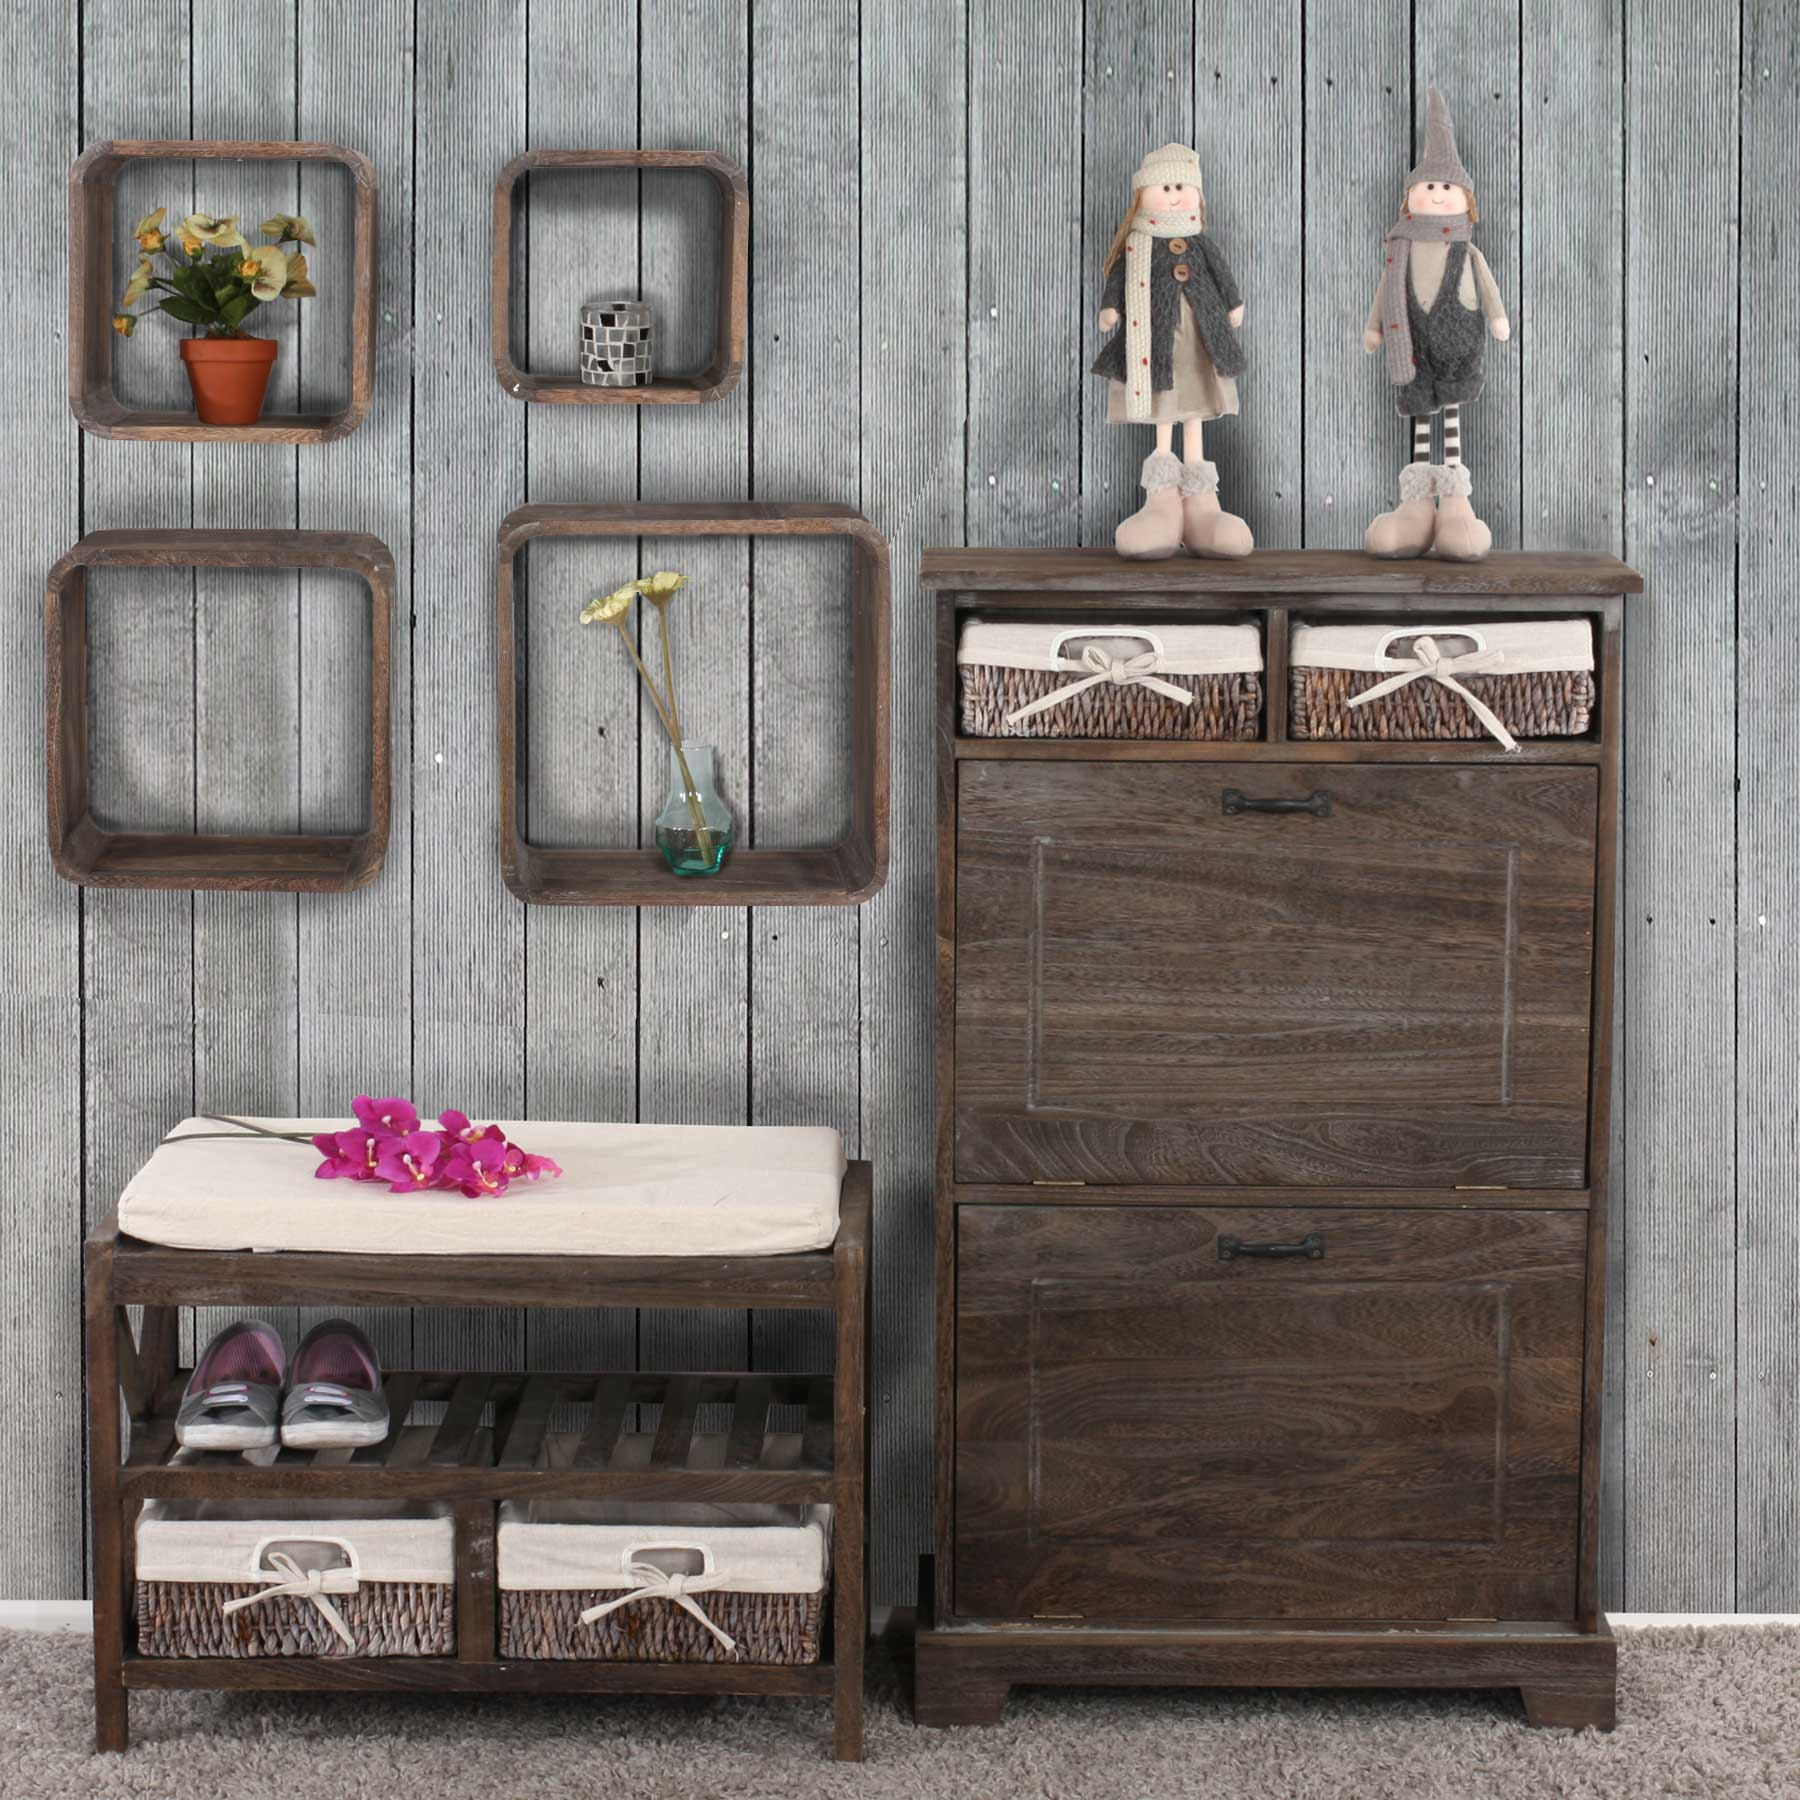 garderobe wandgarderobe mit spiegel wandhaken 180x65x7cm shabby look vintage wei. Black Bedroom Furniture Sets. Home Design Ideas